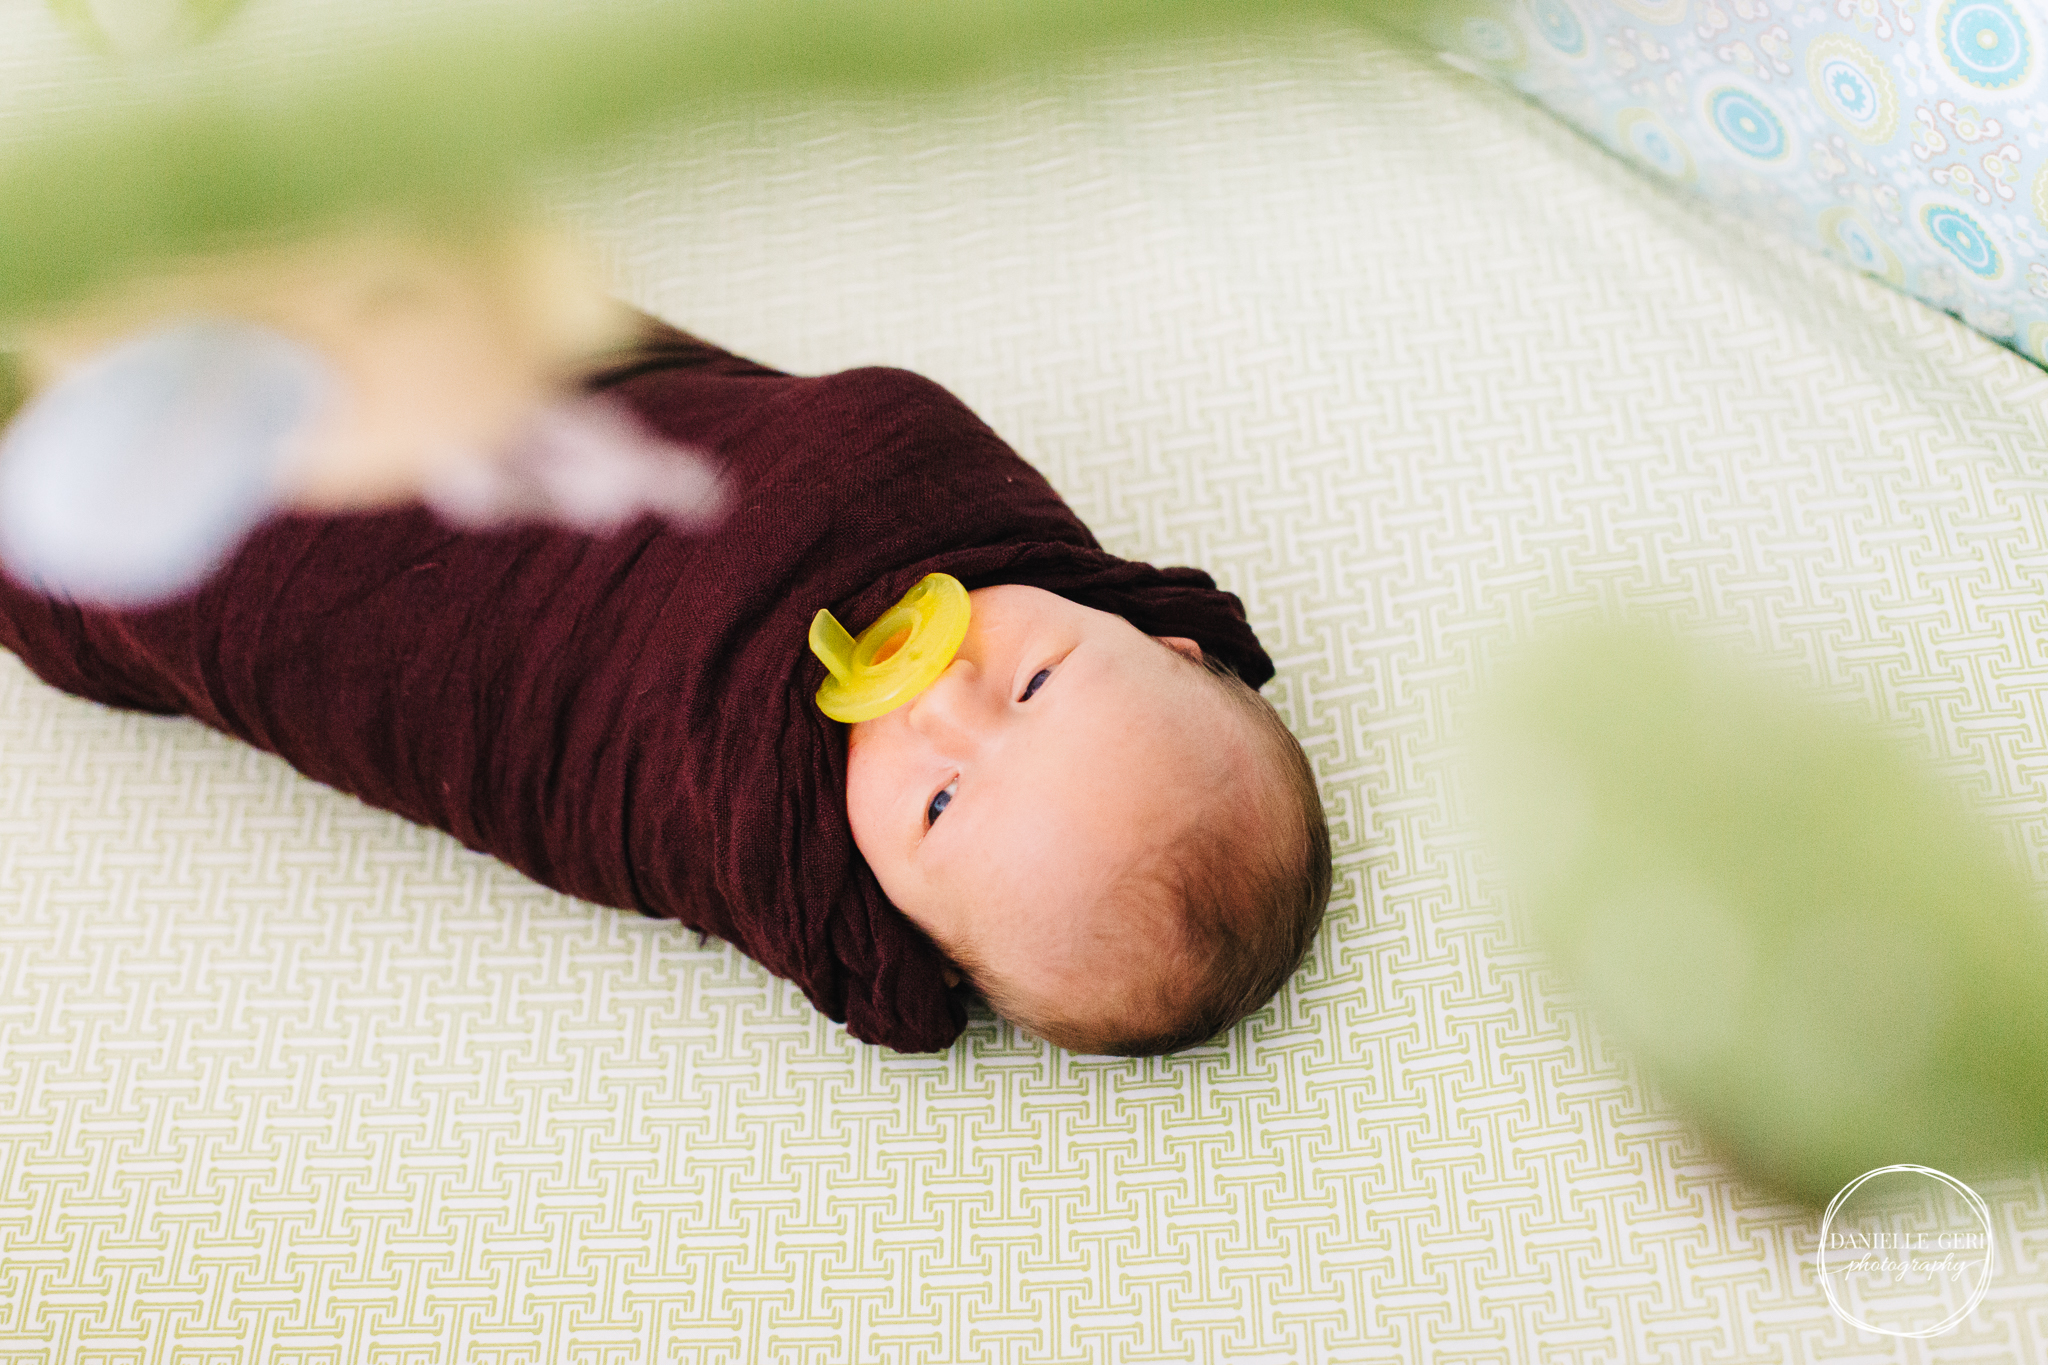 Twin Cities, Minnesota newborn Photographer, Danielle Geri Lifestyle Photography by Danielle Long